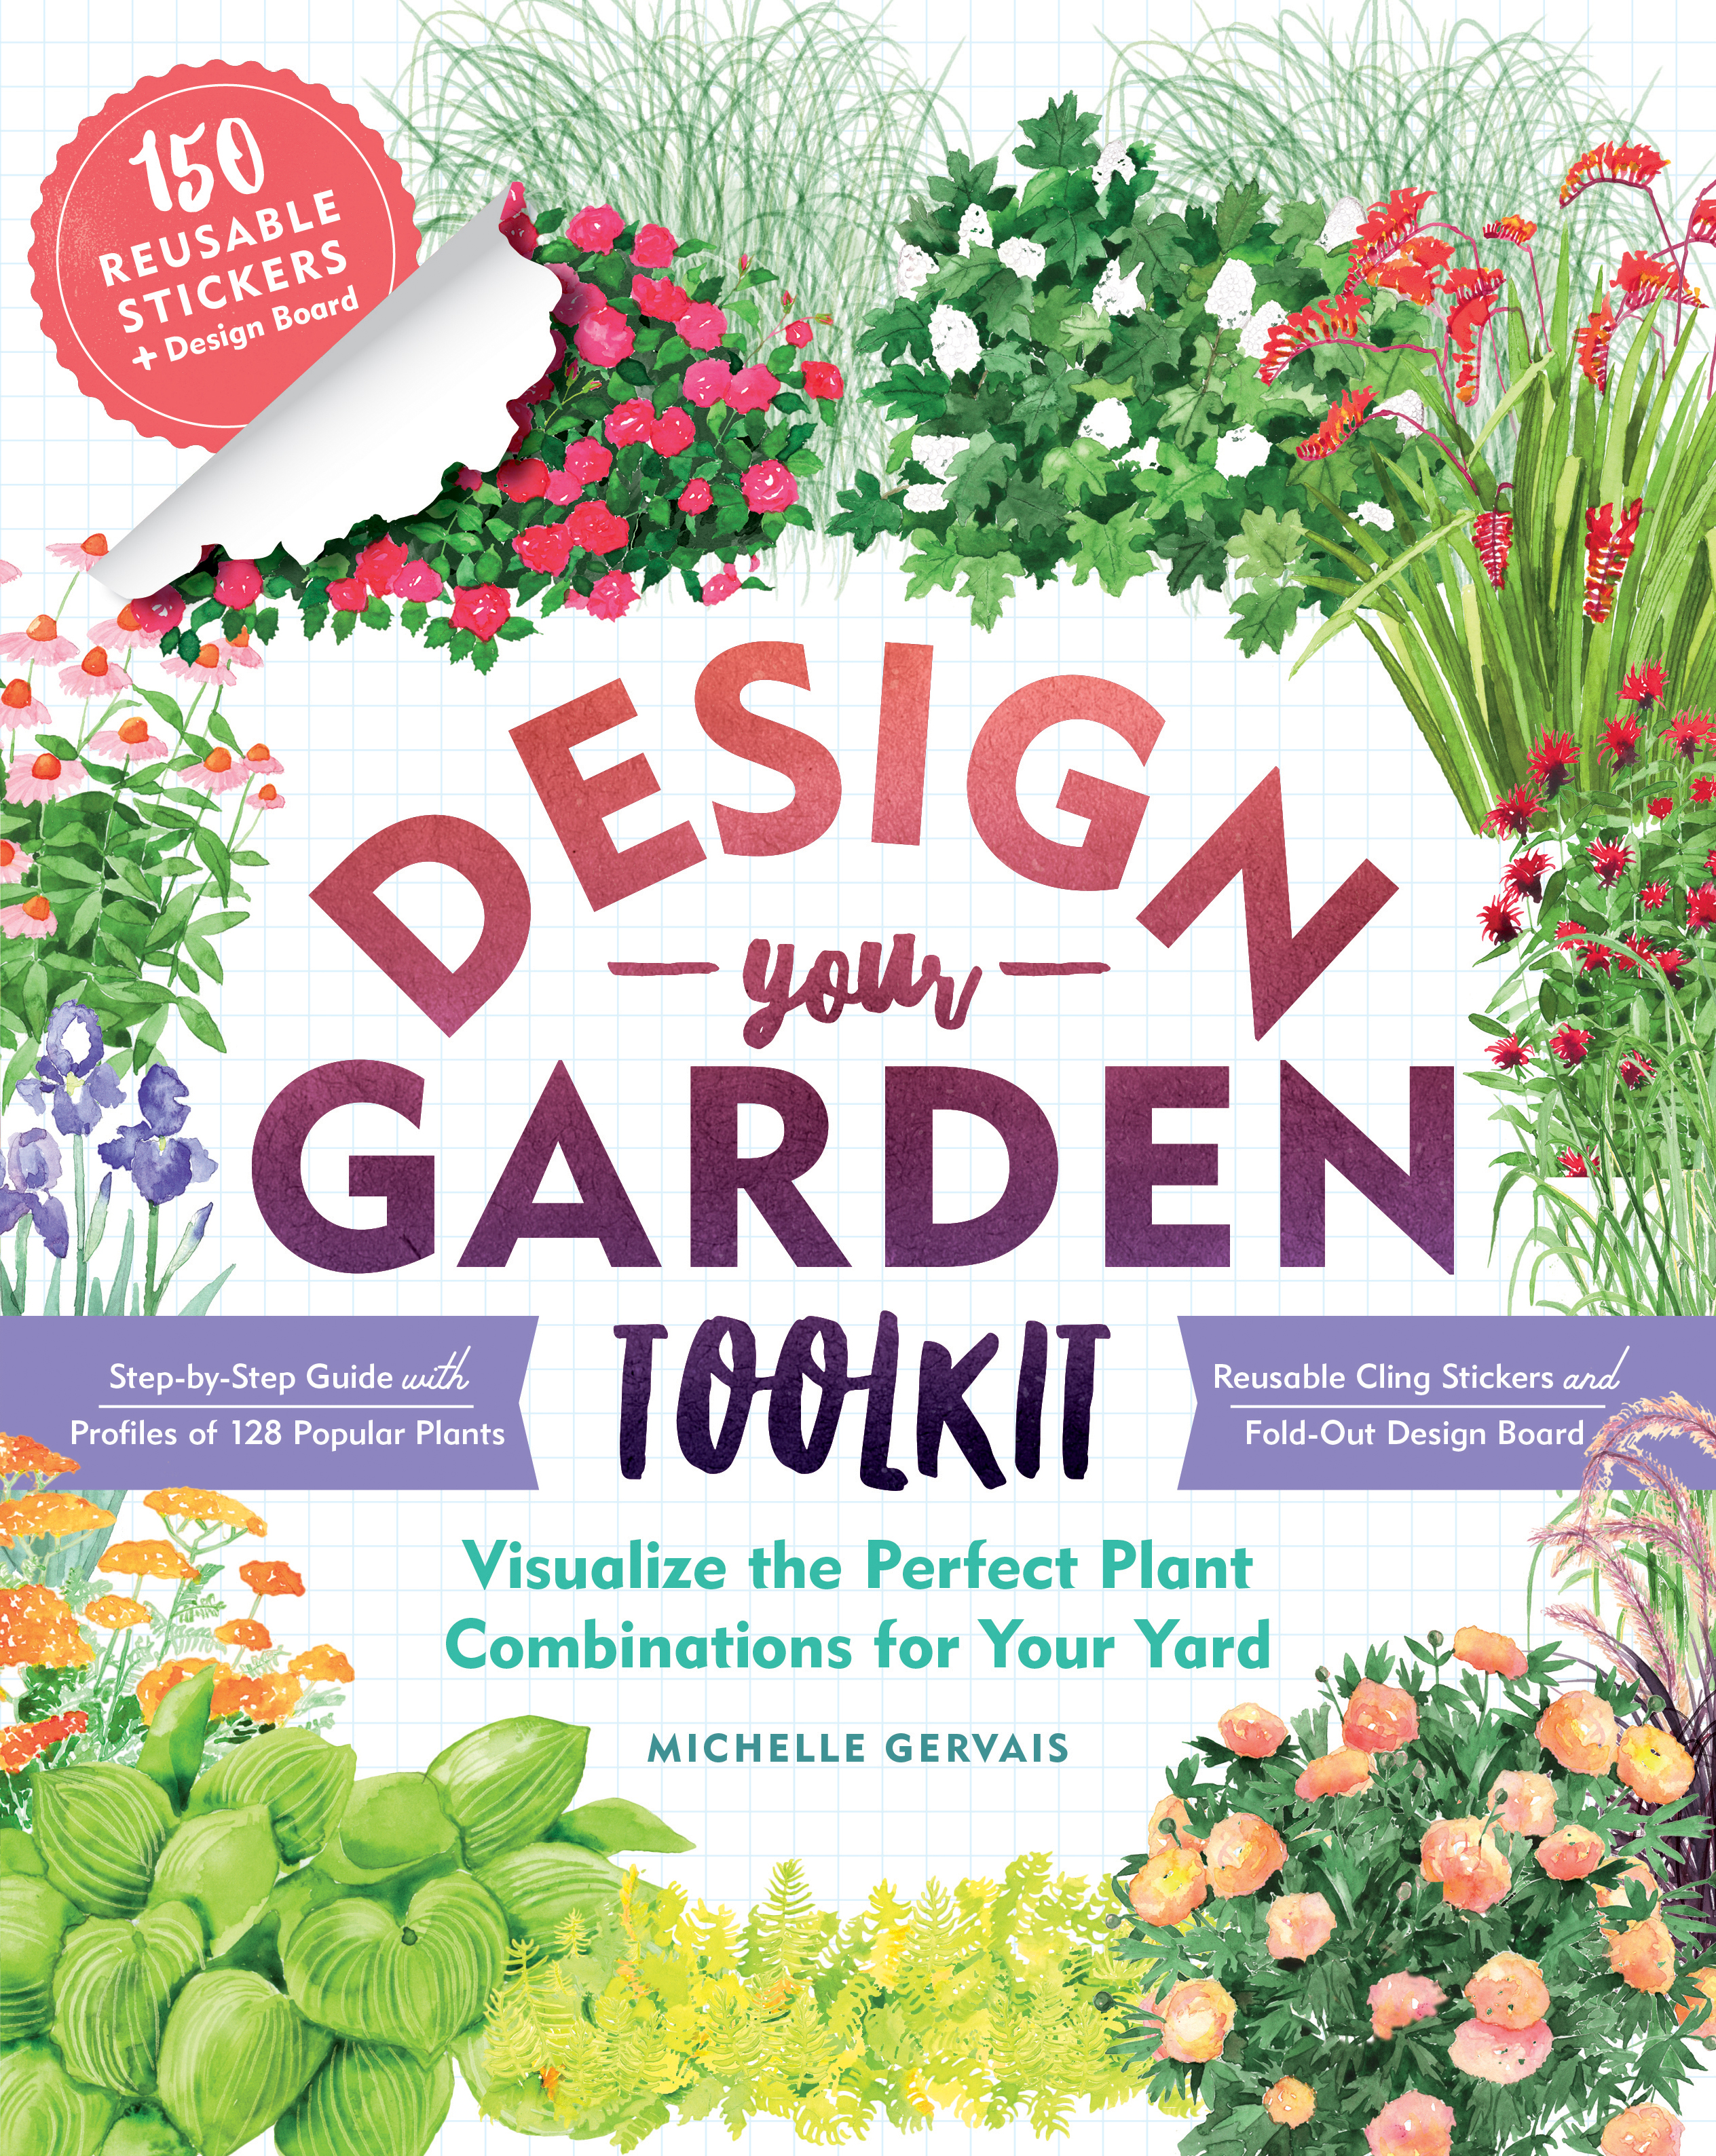 Design-Your-Garden Toolkit Visualize the Perfect Plant Combinations for Your Yard; Step-by-Step Guide with Profiles of 128 Popular Plants, Reusable Cling Stickers, and Fold-Out Design Board - Michelle Gervais